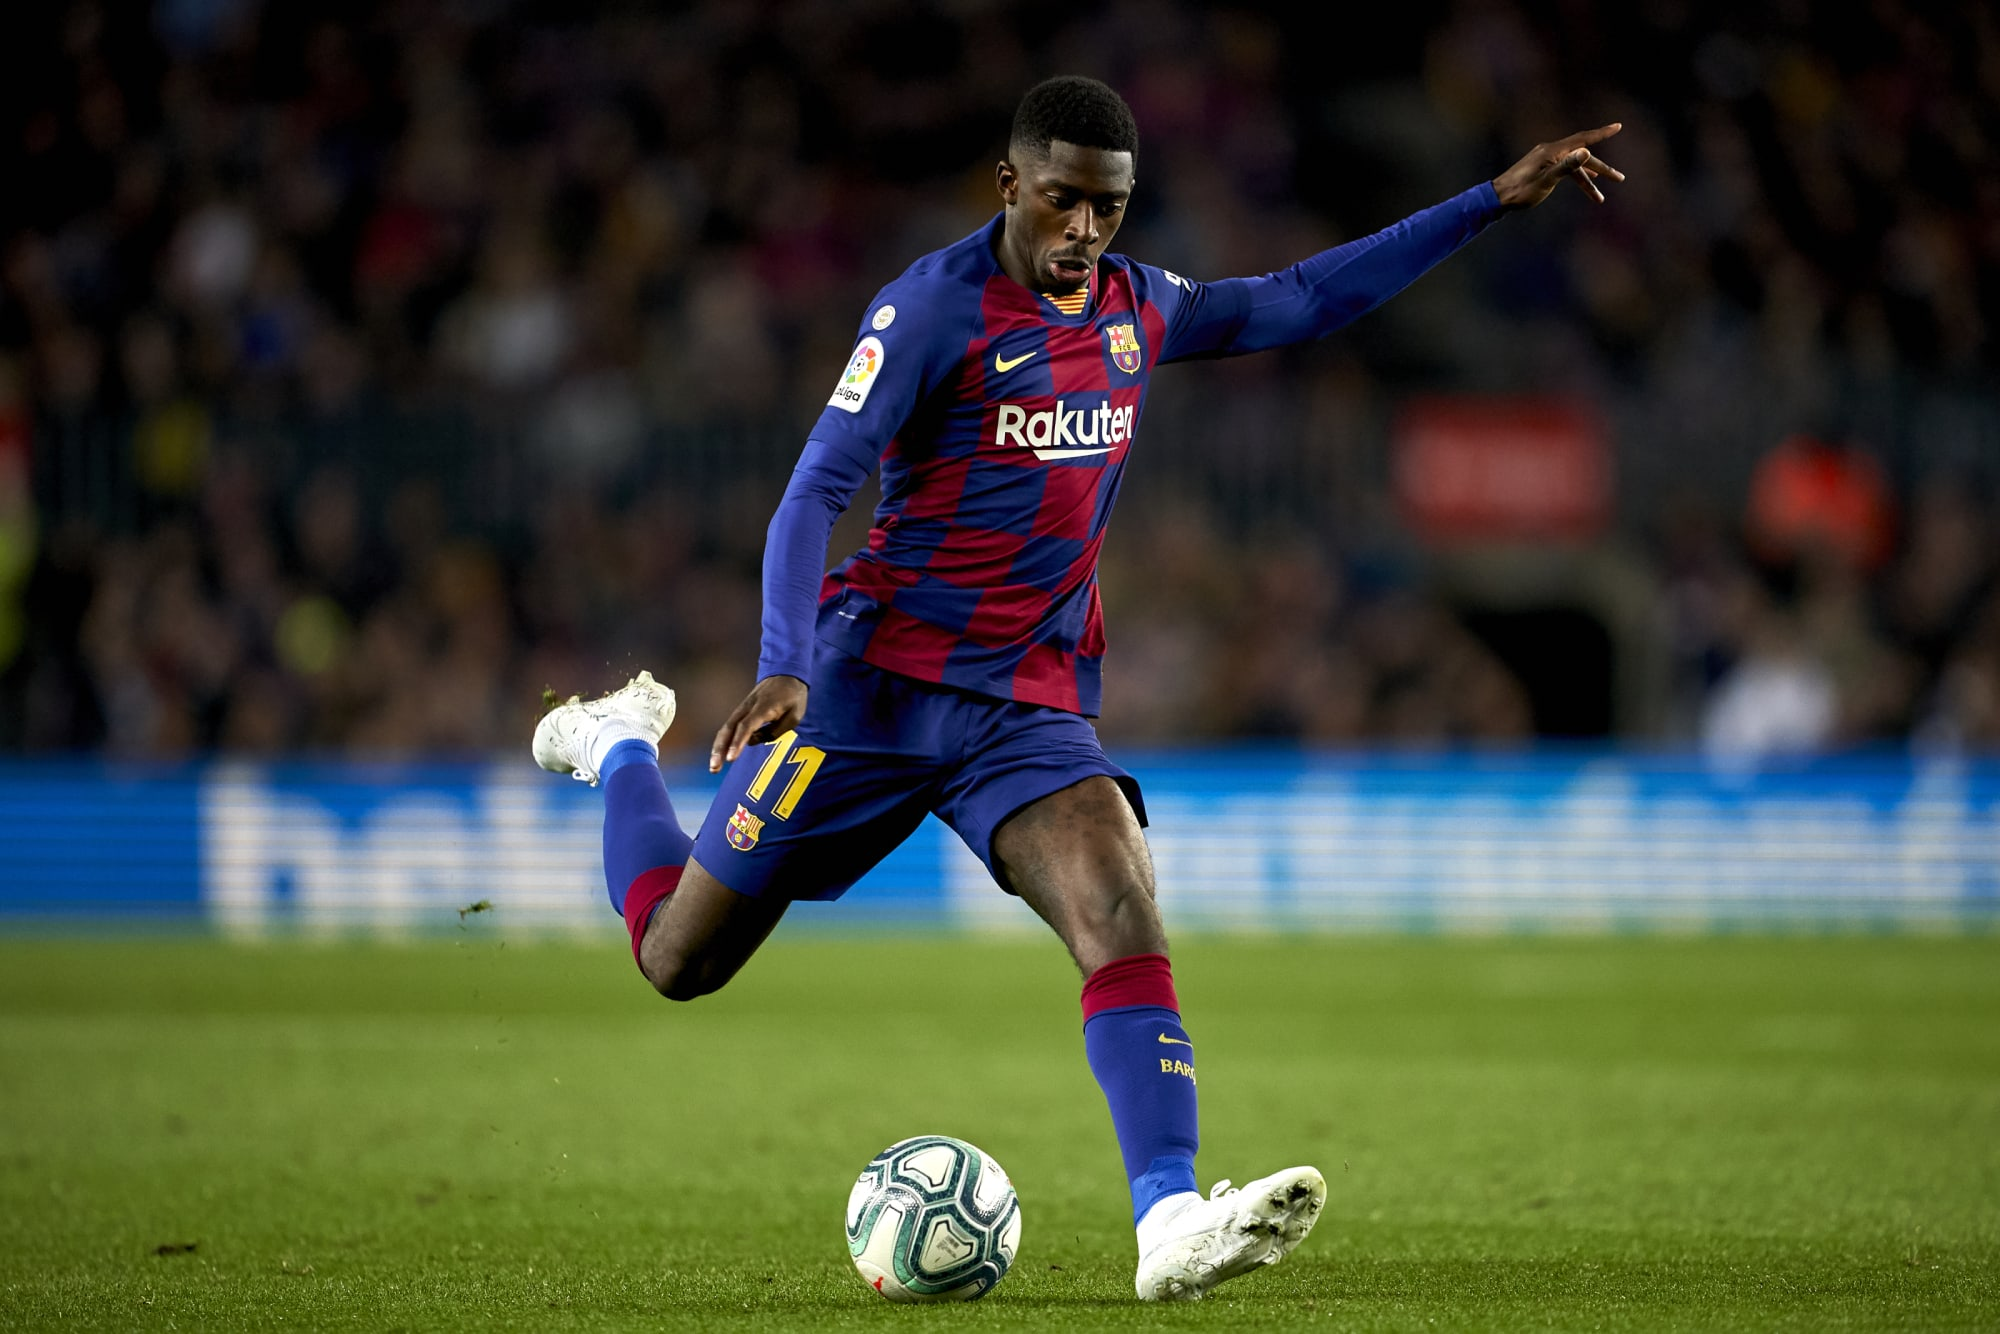 Manchester United had signed transfer papers for Barcelona superstar